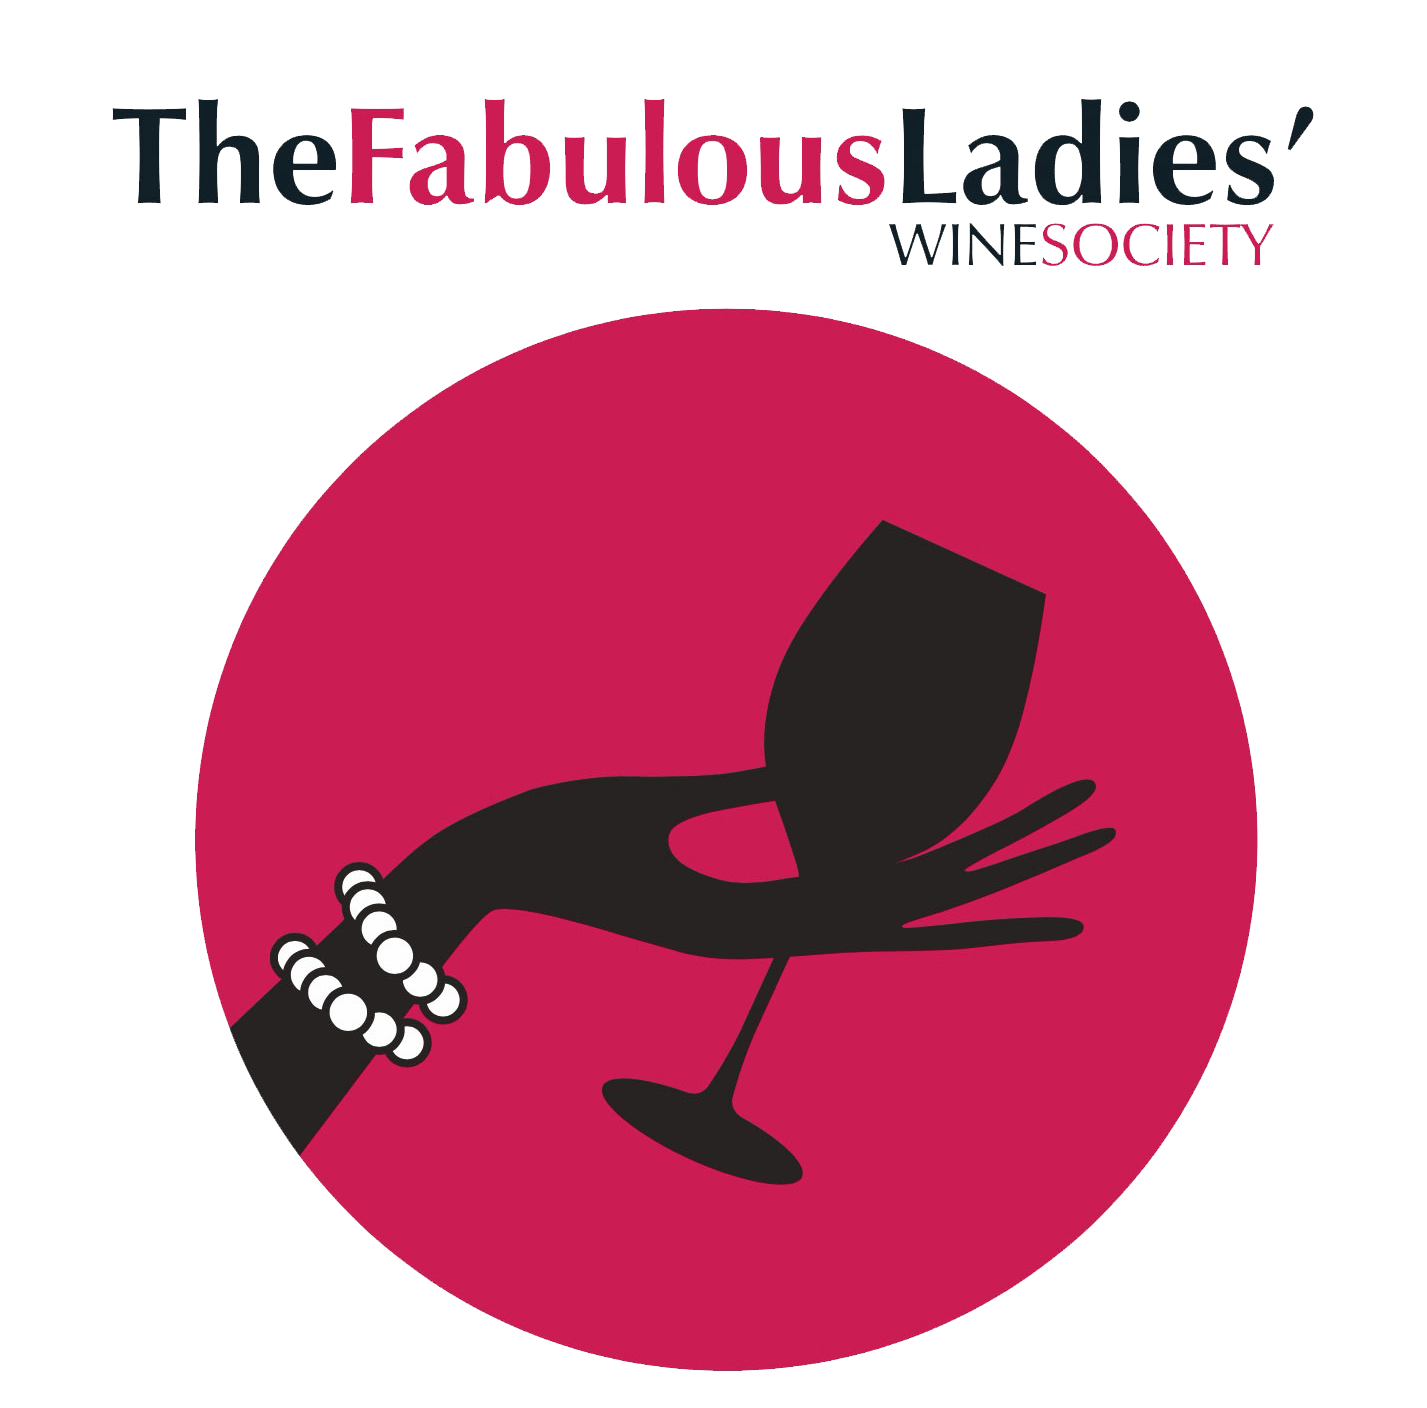 The Fabulous Ladies Wine Society